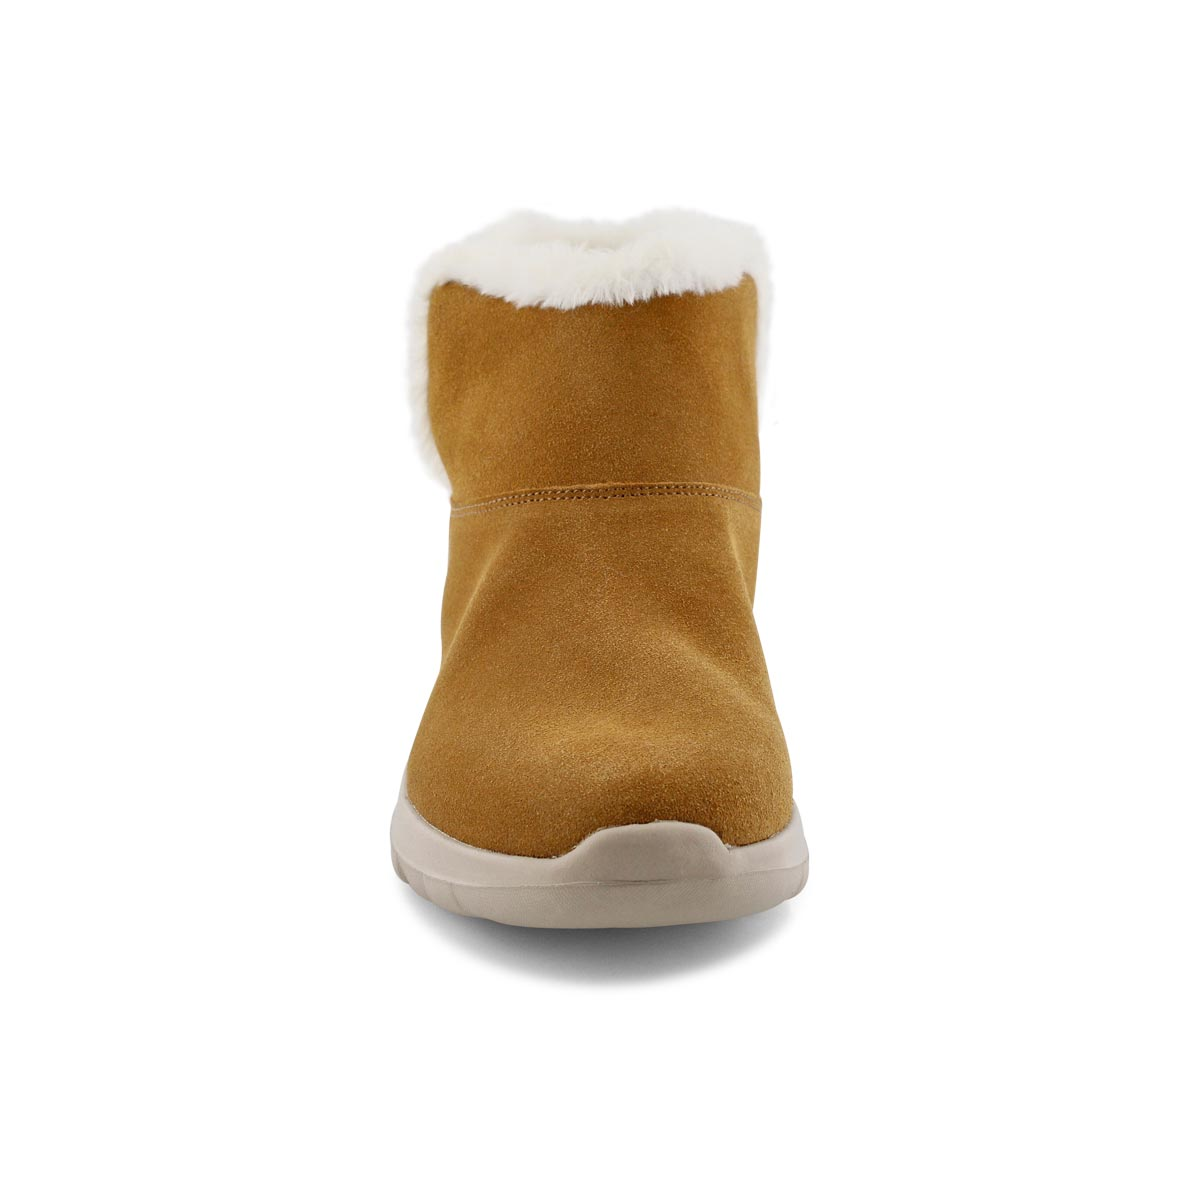 Lds On-The-Go Joy chesnut ankle boot